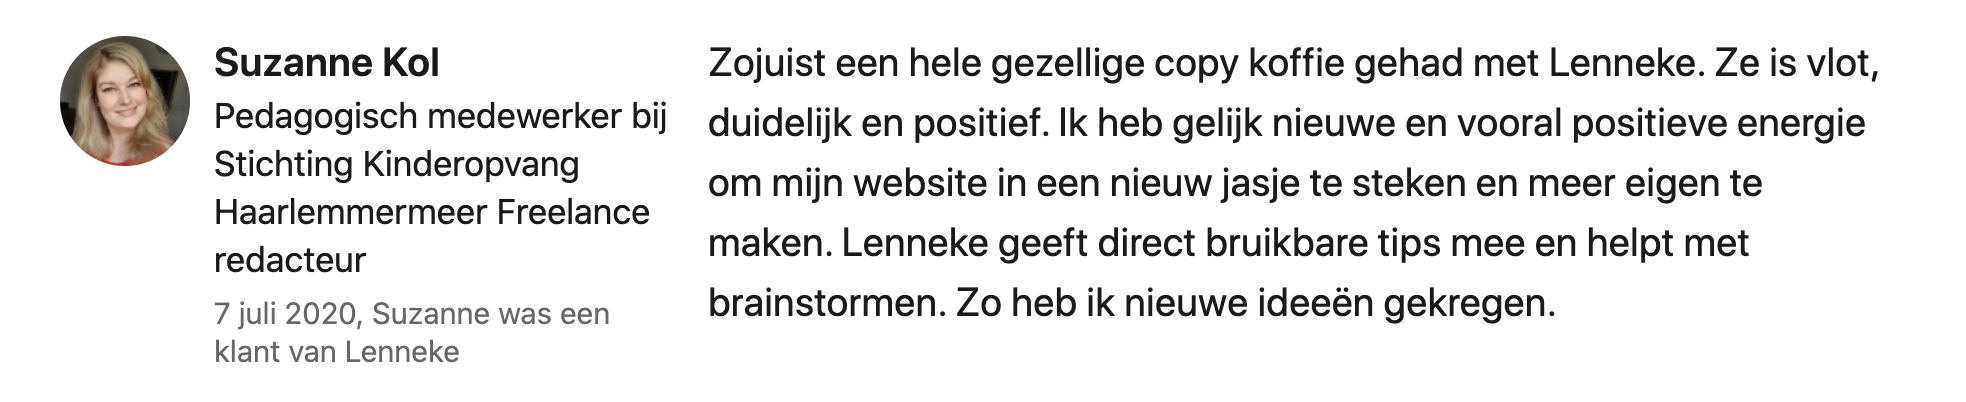 Suzanne Kol over Copy Koffie